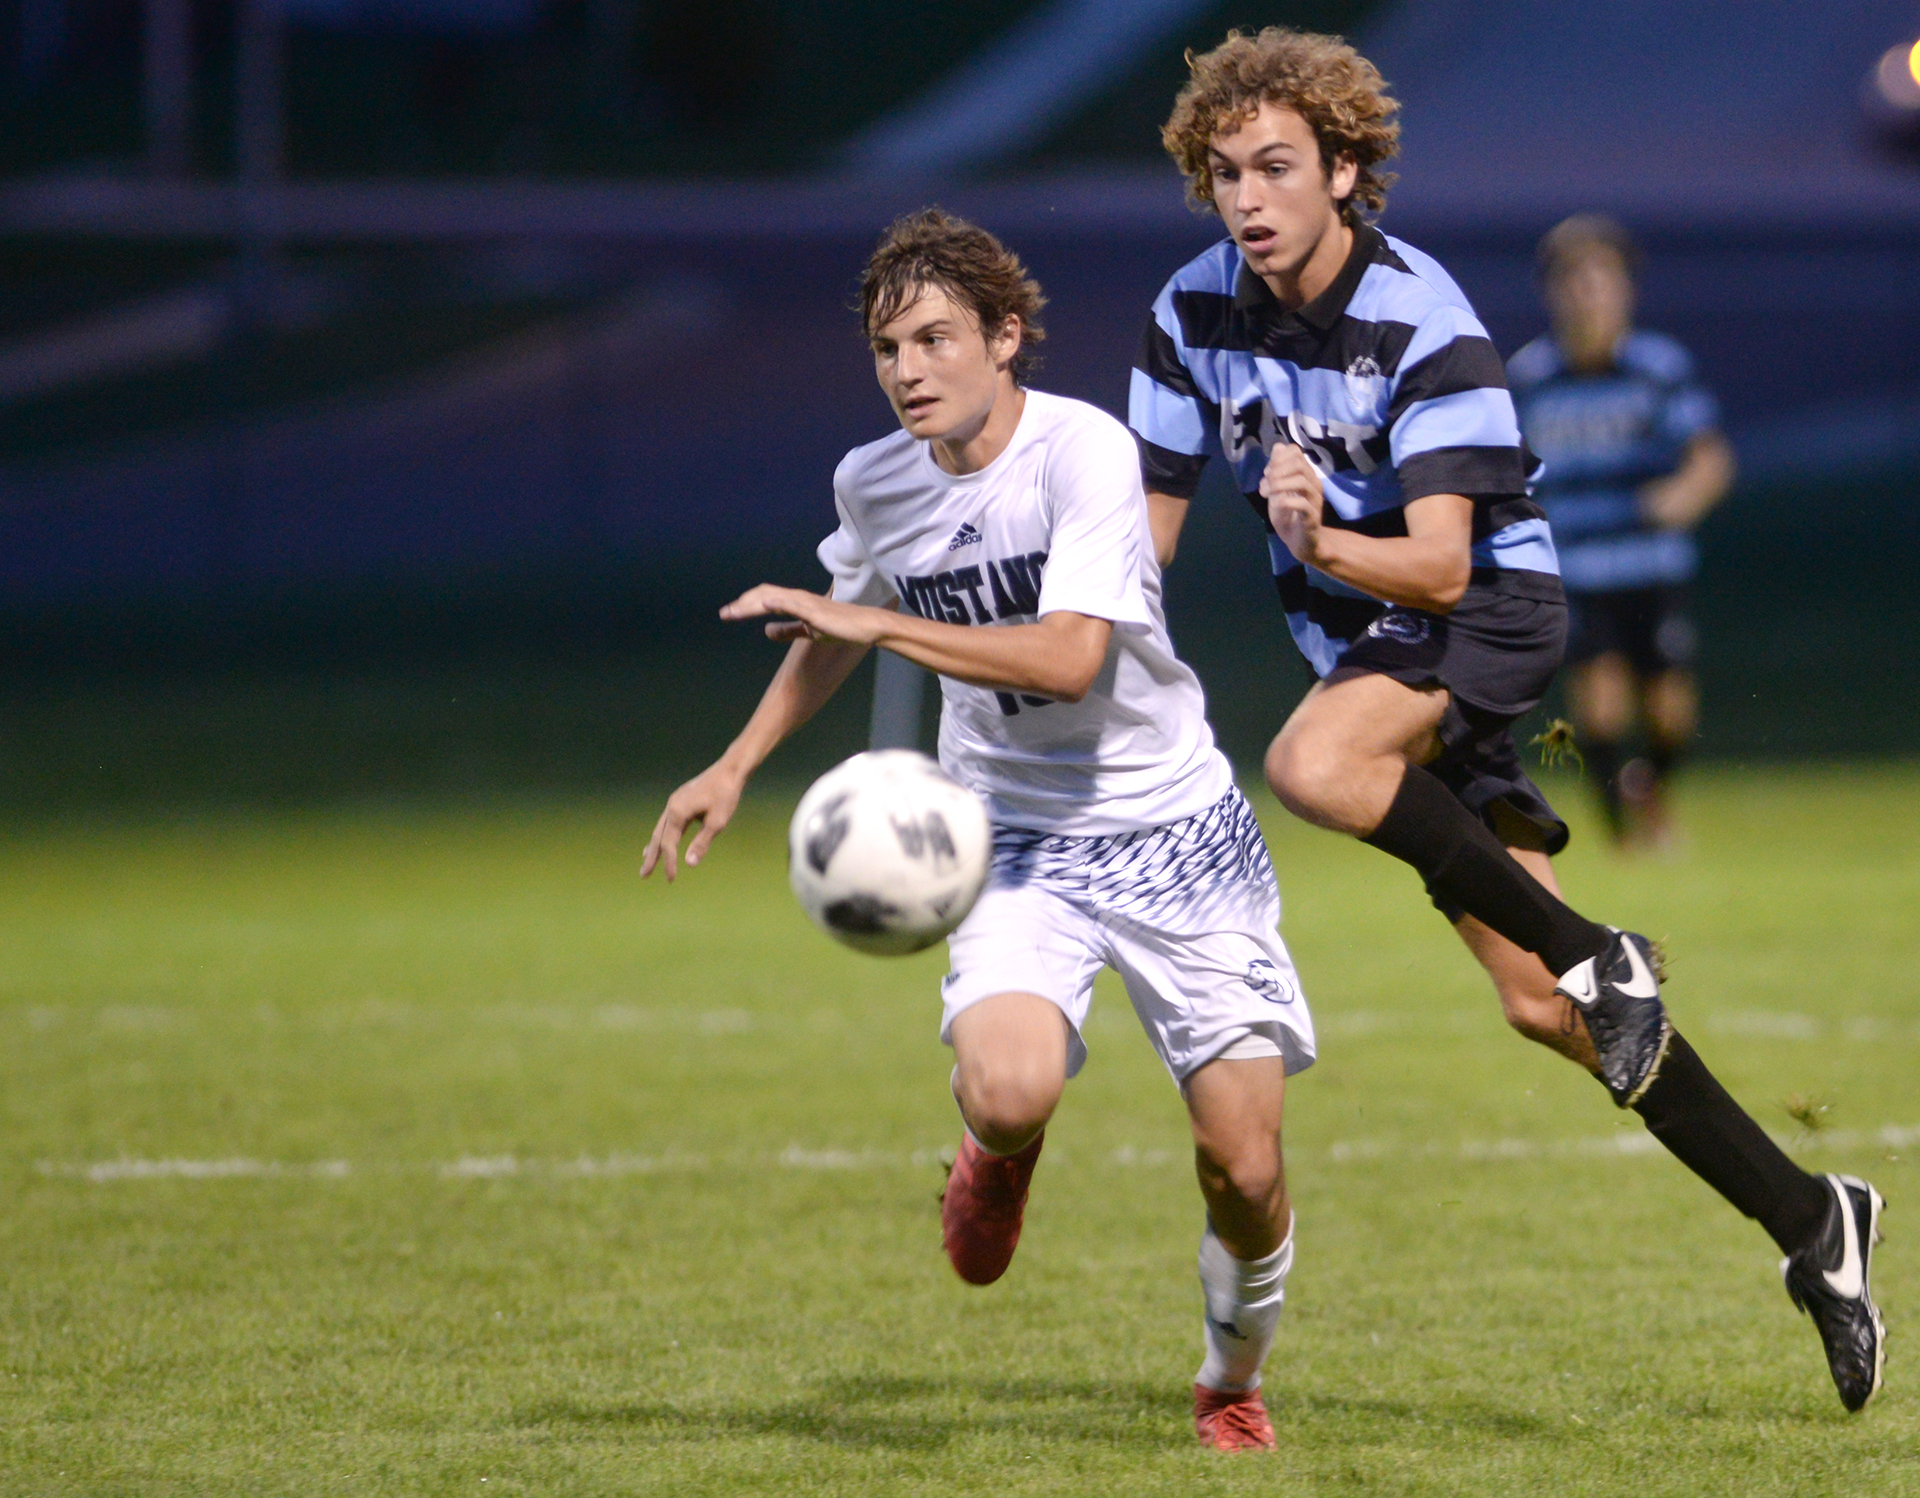 Junior Peter Kohring attempts to catch a BVN player. Photo by Luke Hoffman